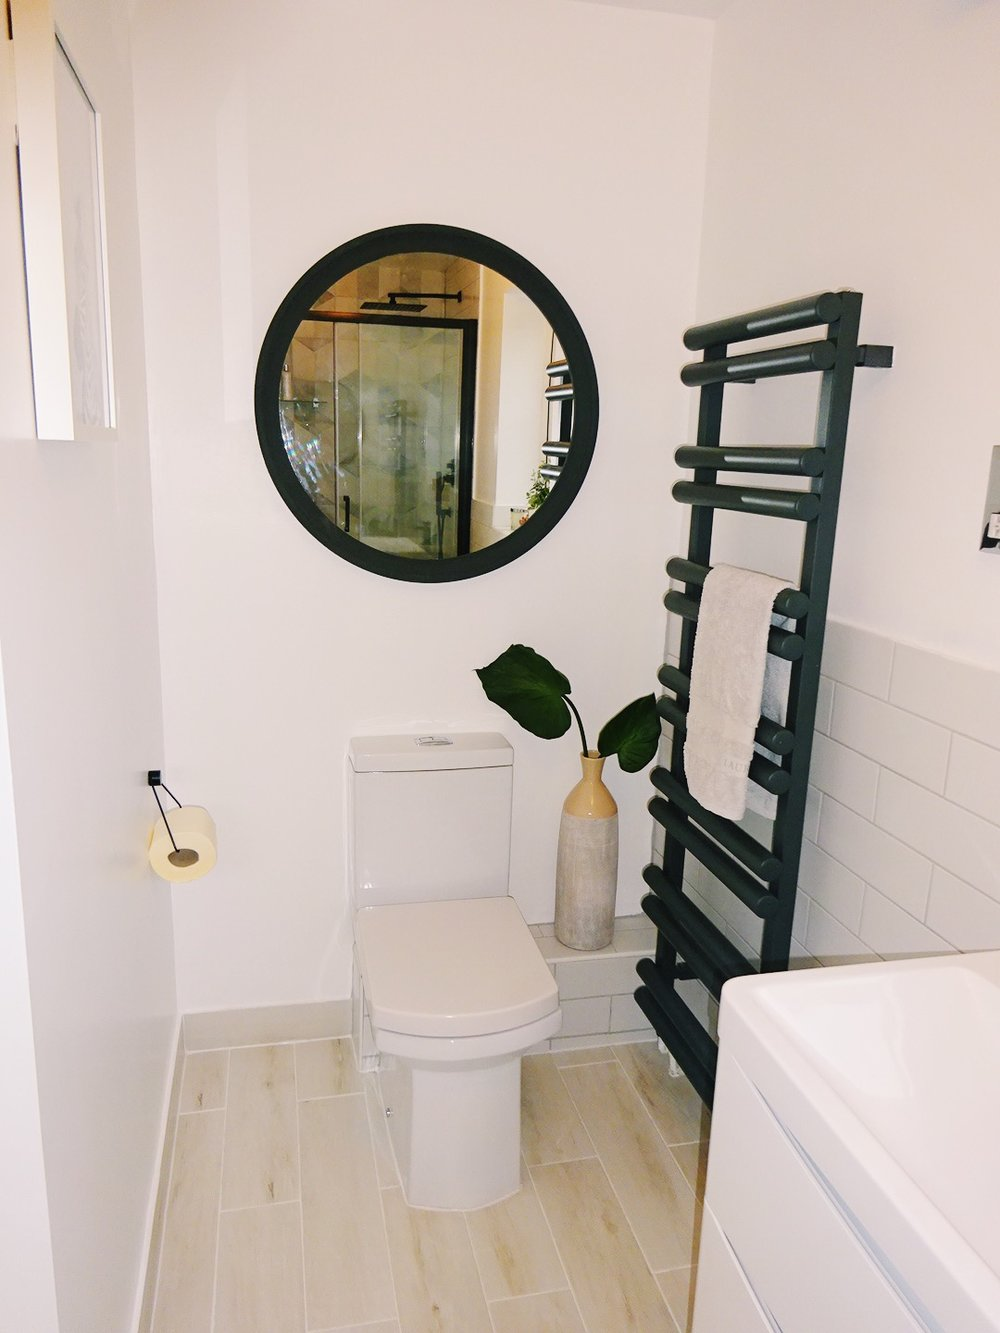 The white wood effect tiles for the floor are one of our favourite additions, I'd have them everywhere in the house! These are from  Walls and Floors . The tall black towel rail makes a statement and goes well with the round mirror which was an  IKEA  hack, I painted it to achieve that effect.